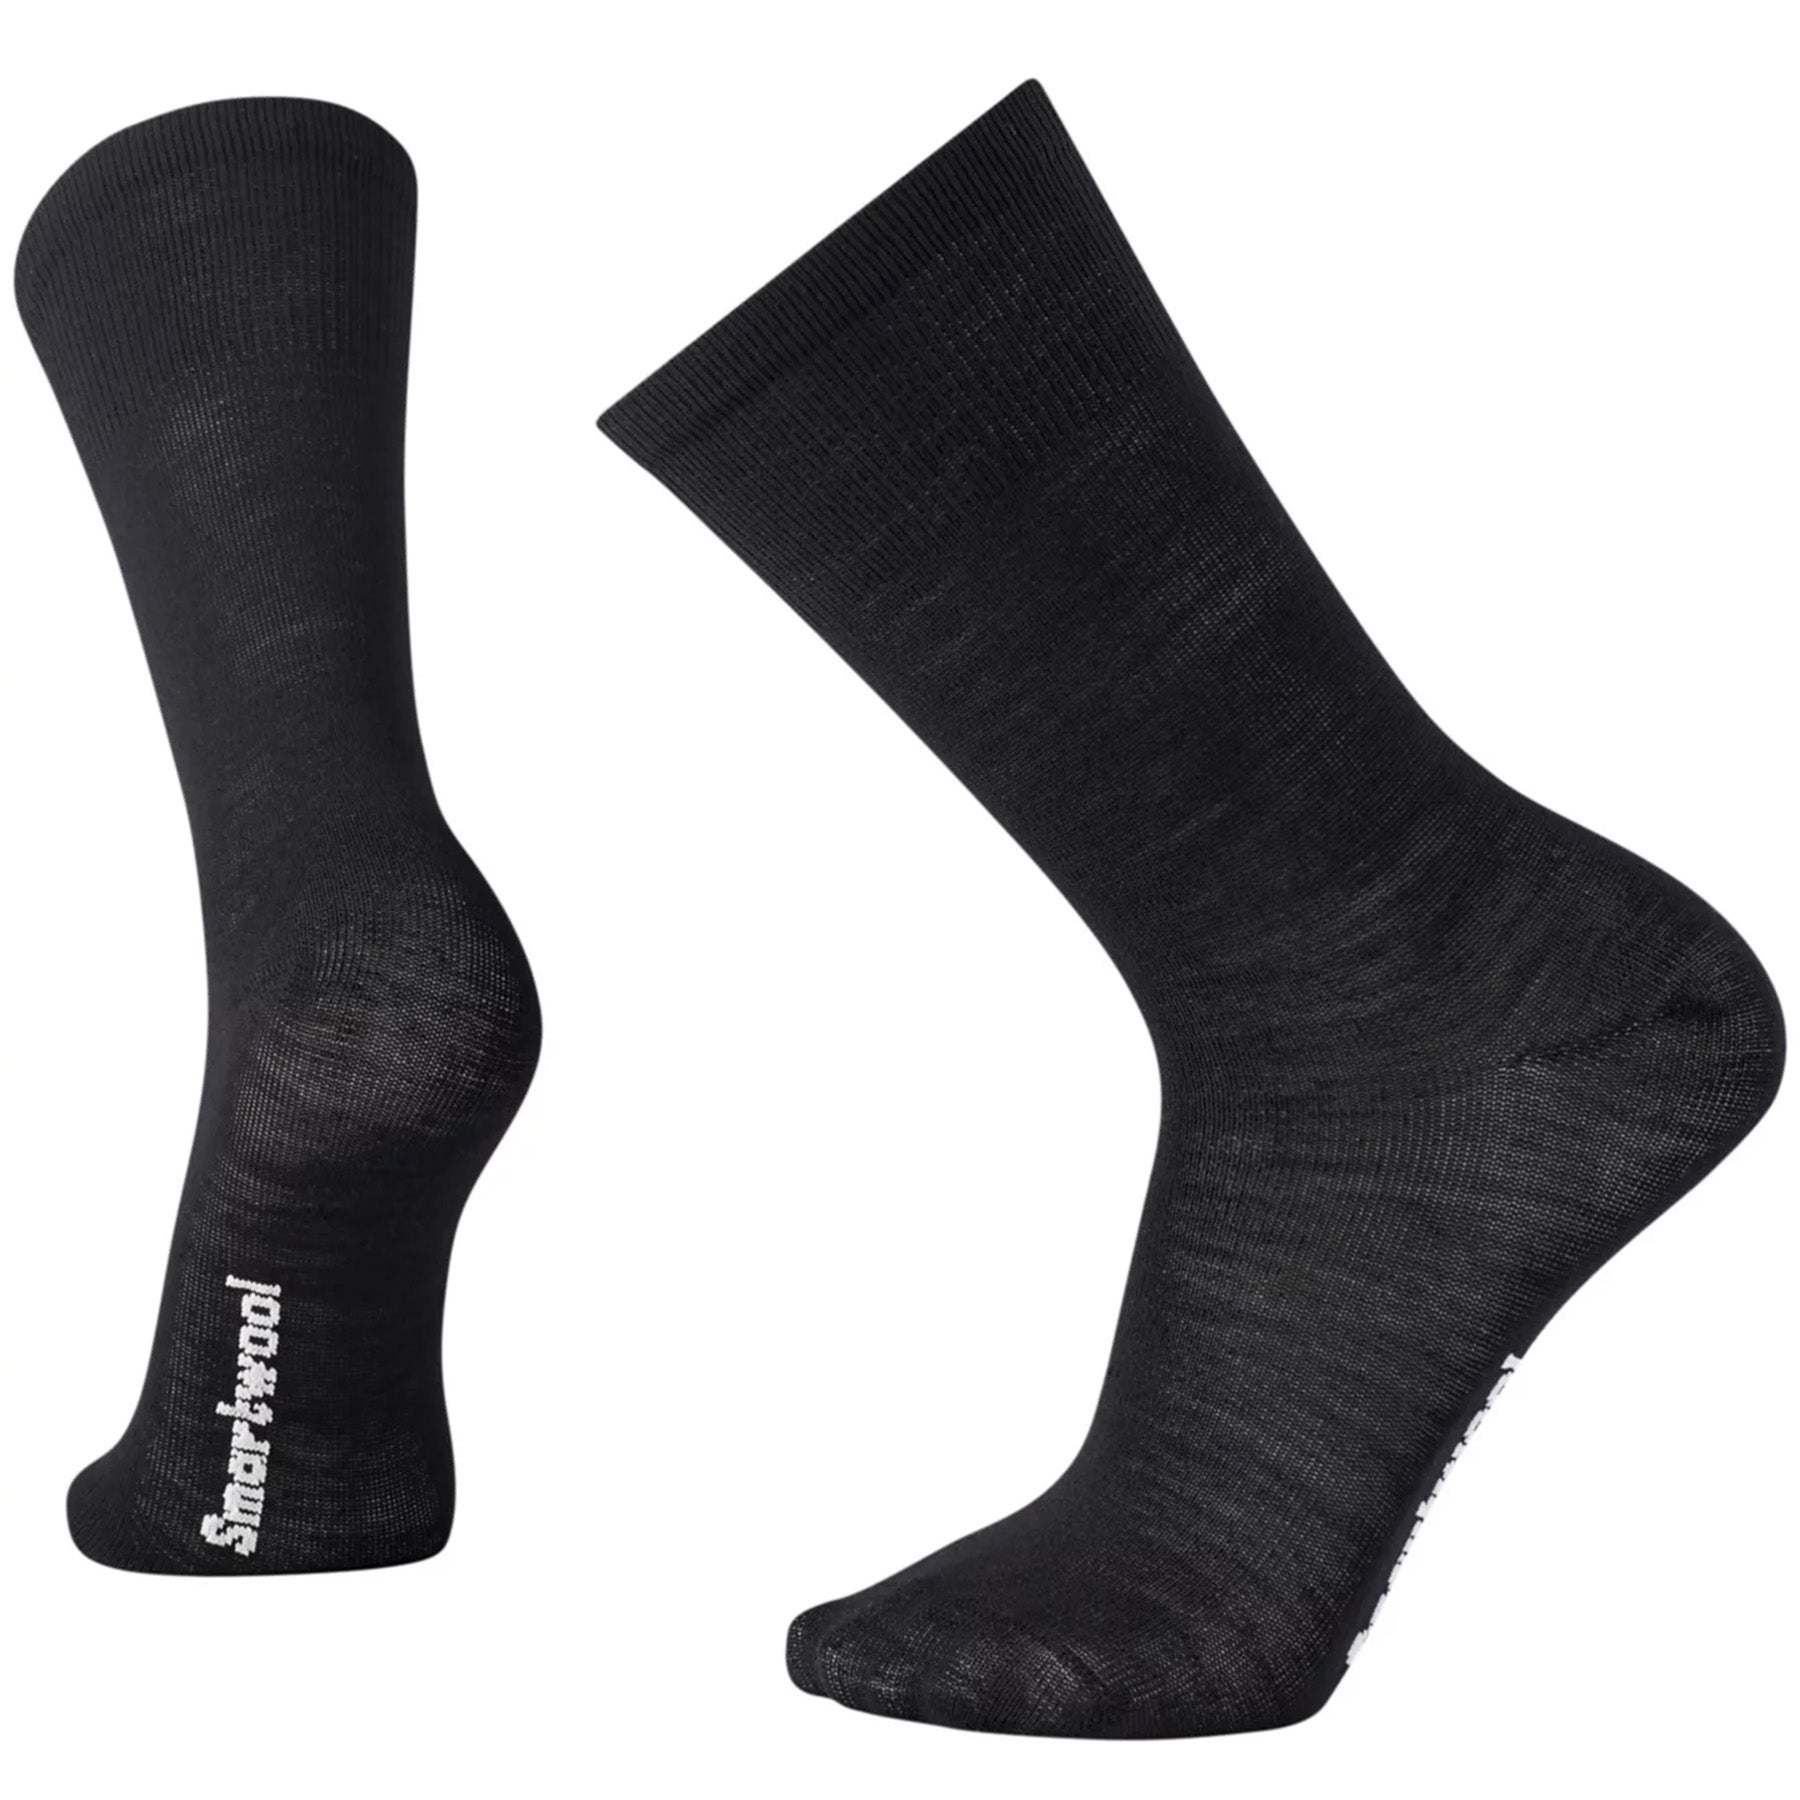 a pair of hiking liner crew socks in black